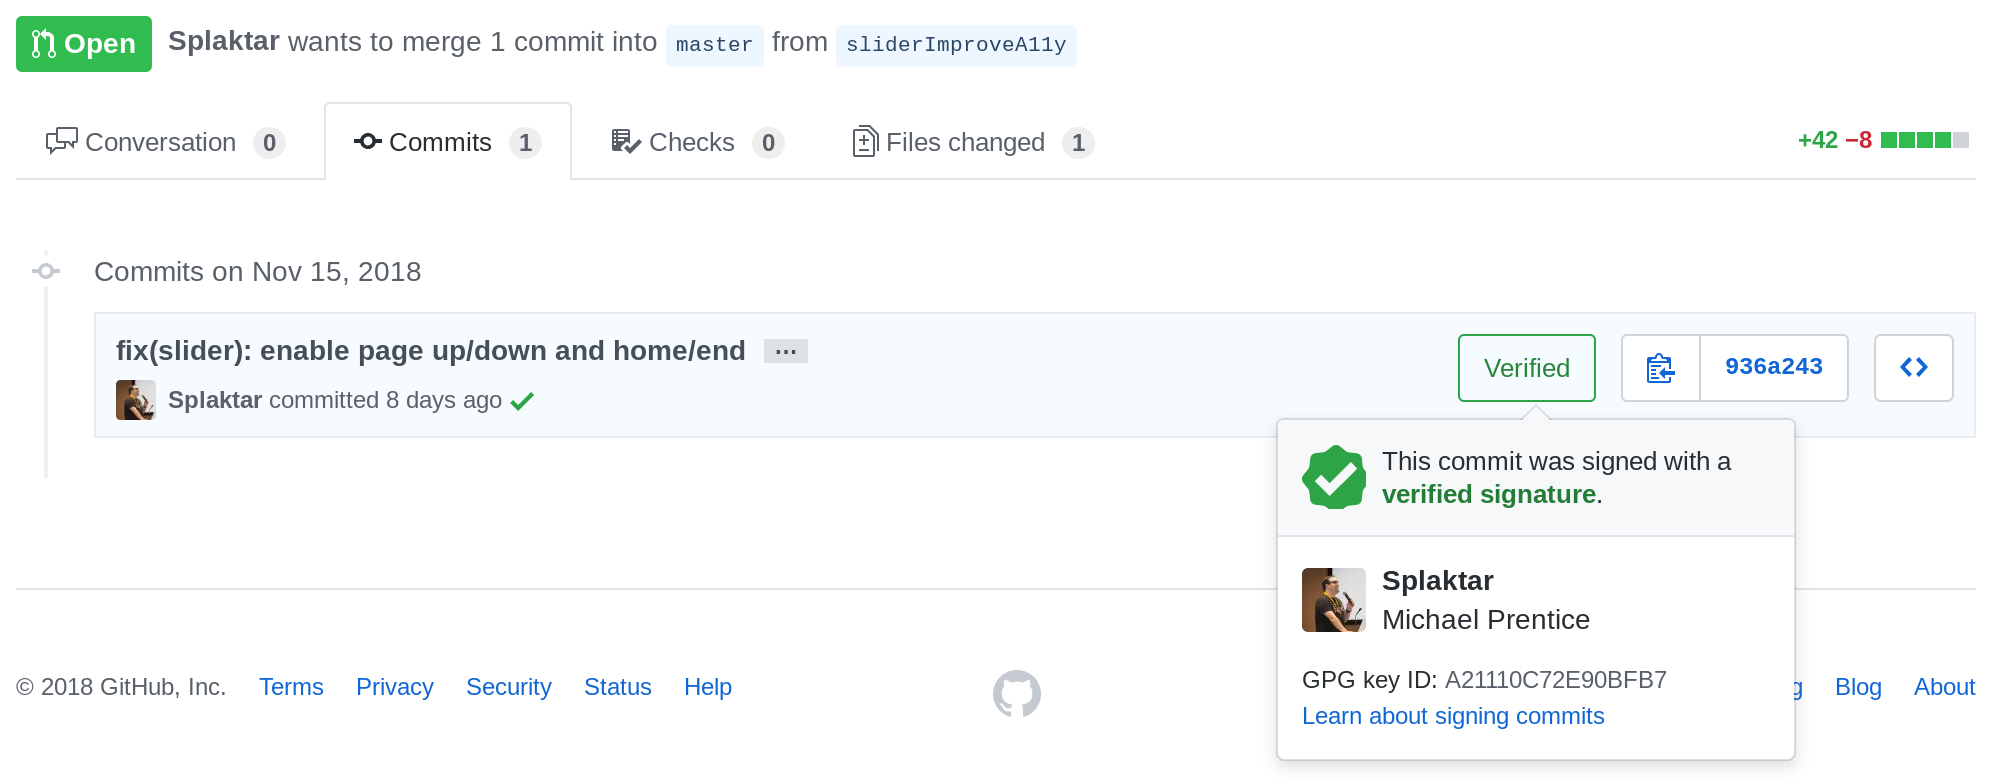 Example of a commit signed with a verified GPG key